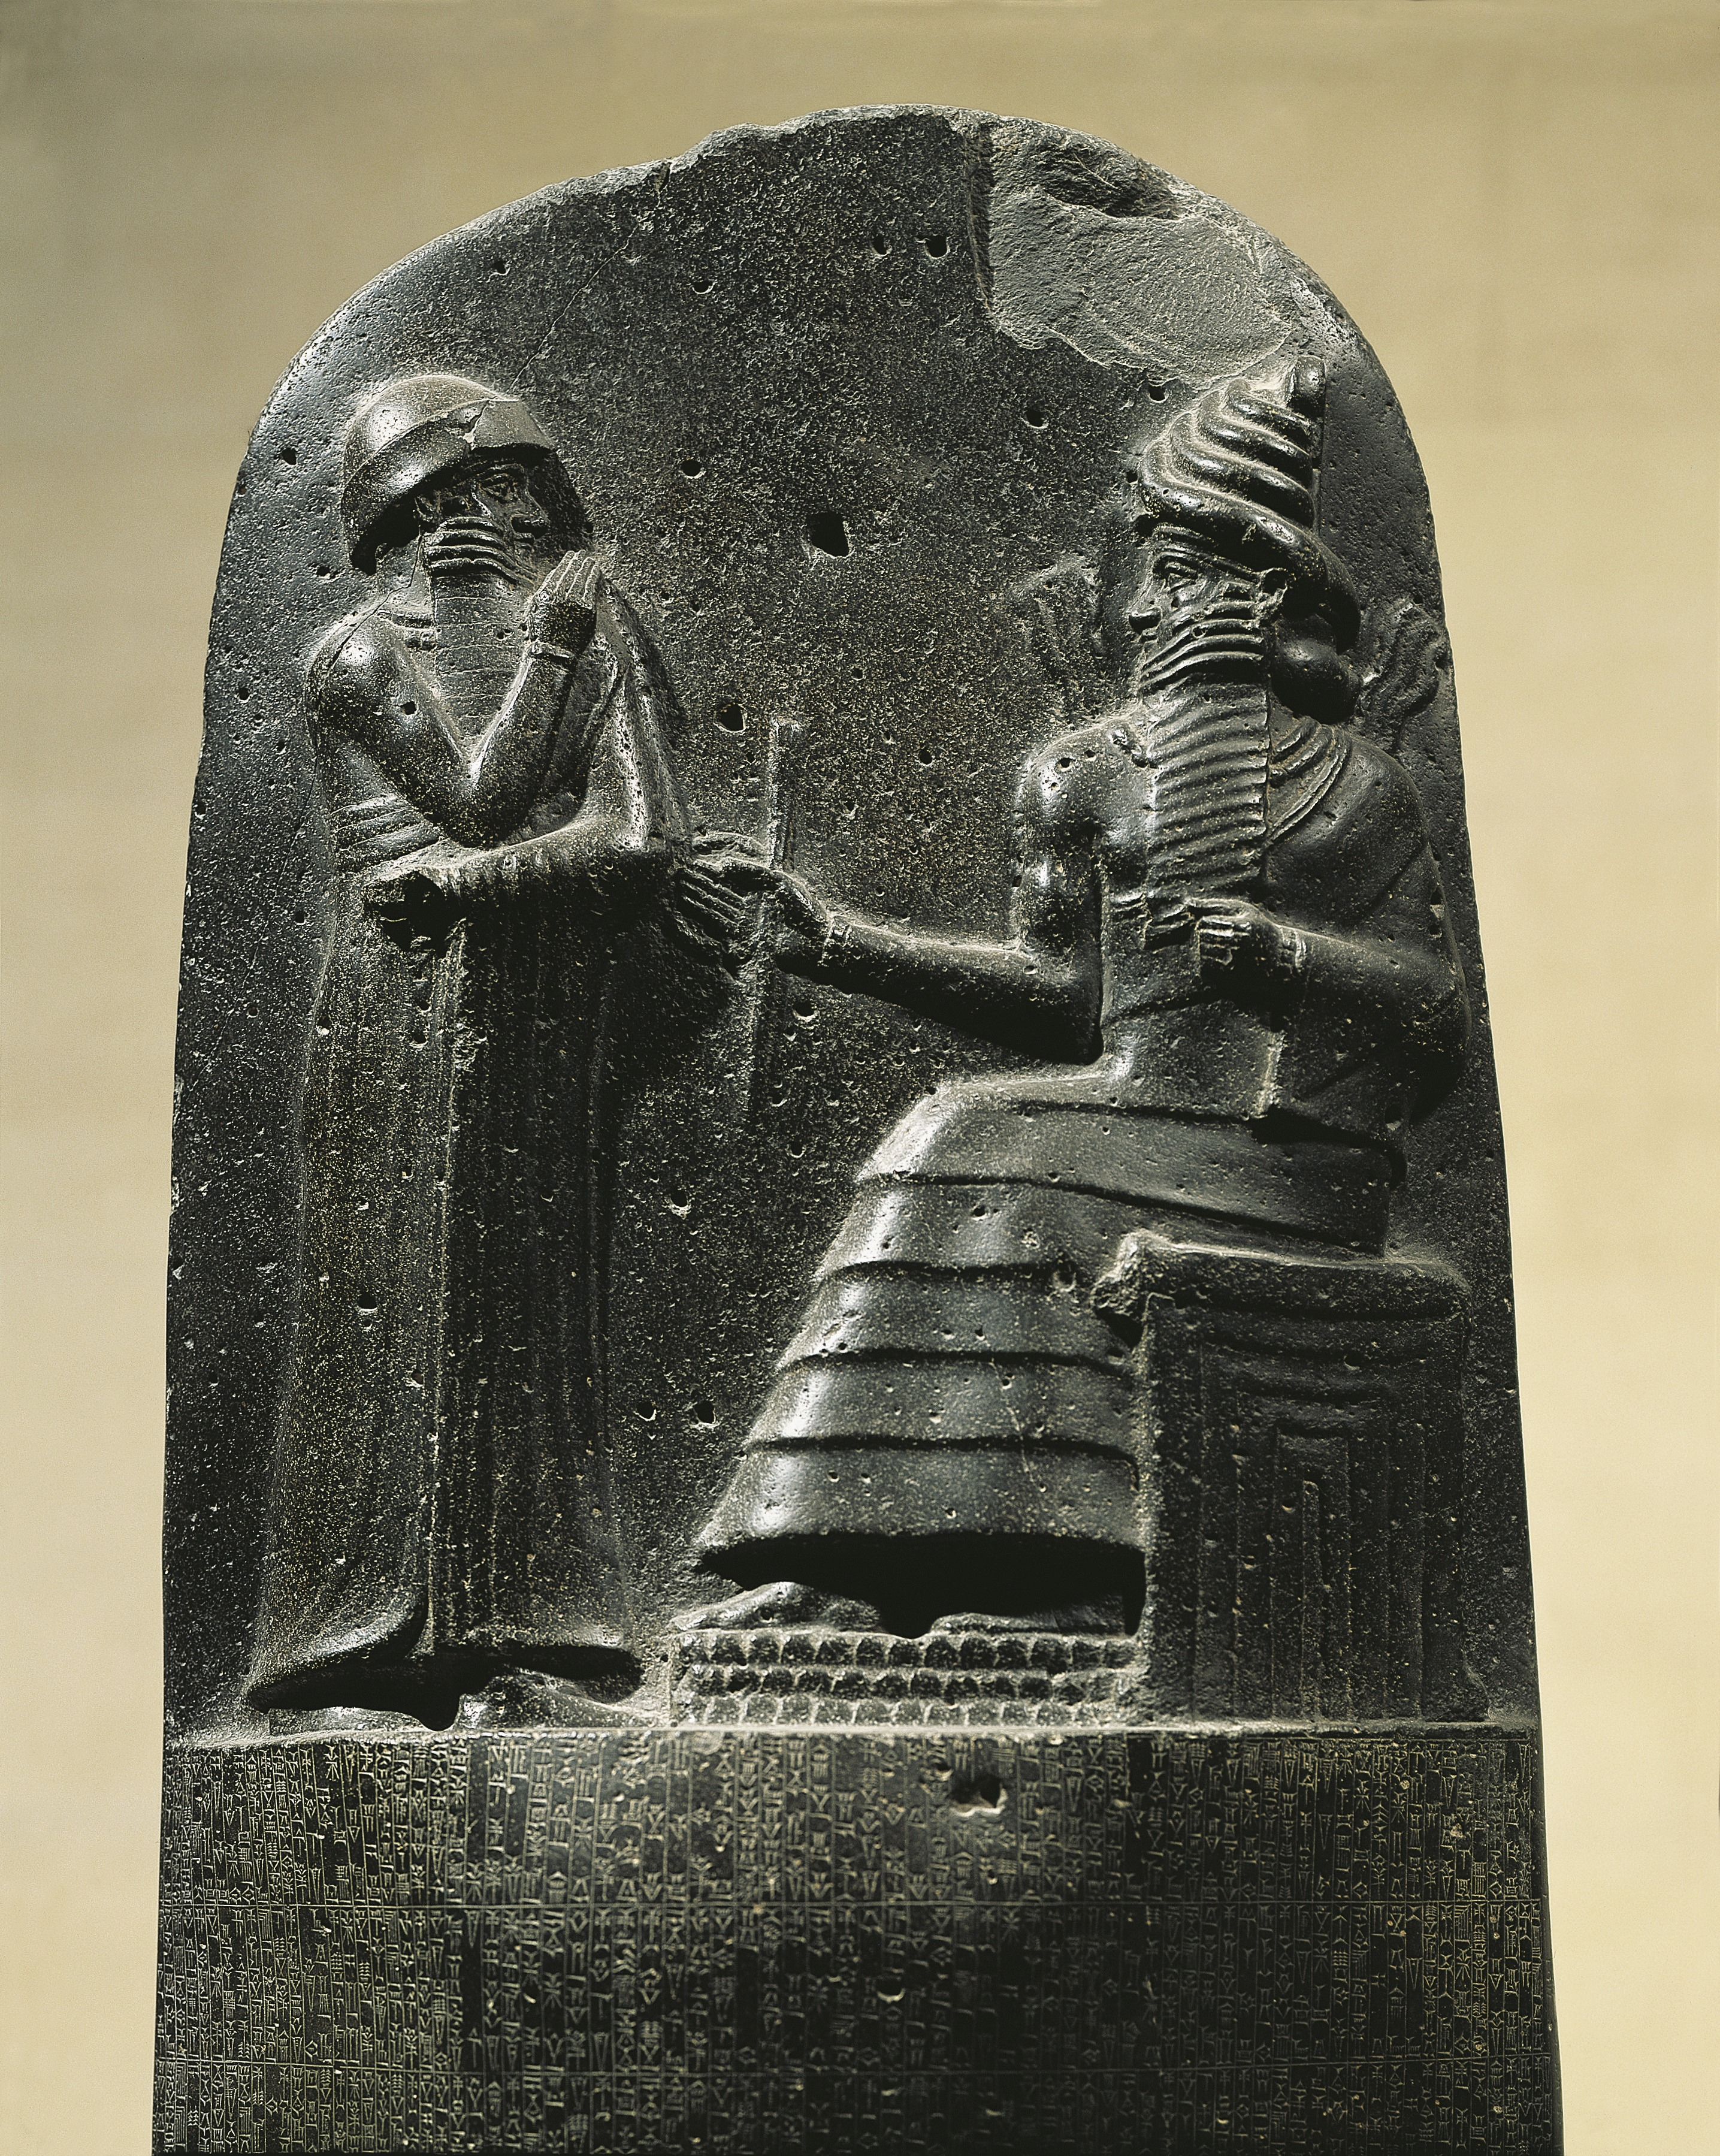 8 Things You May Not Know About Hammurabi's Code - HISTORY